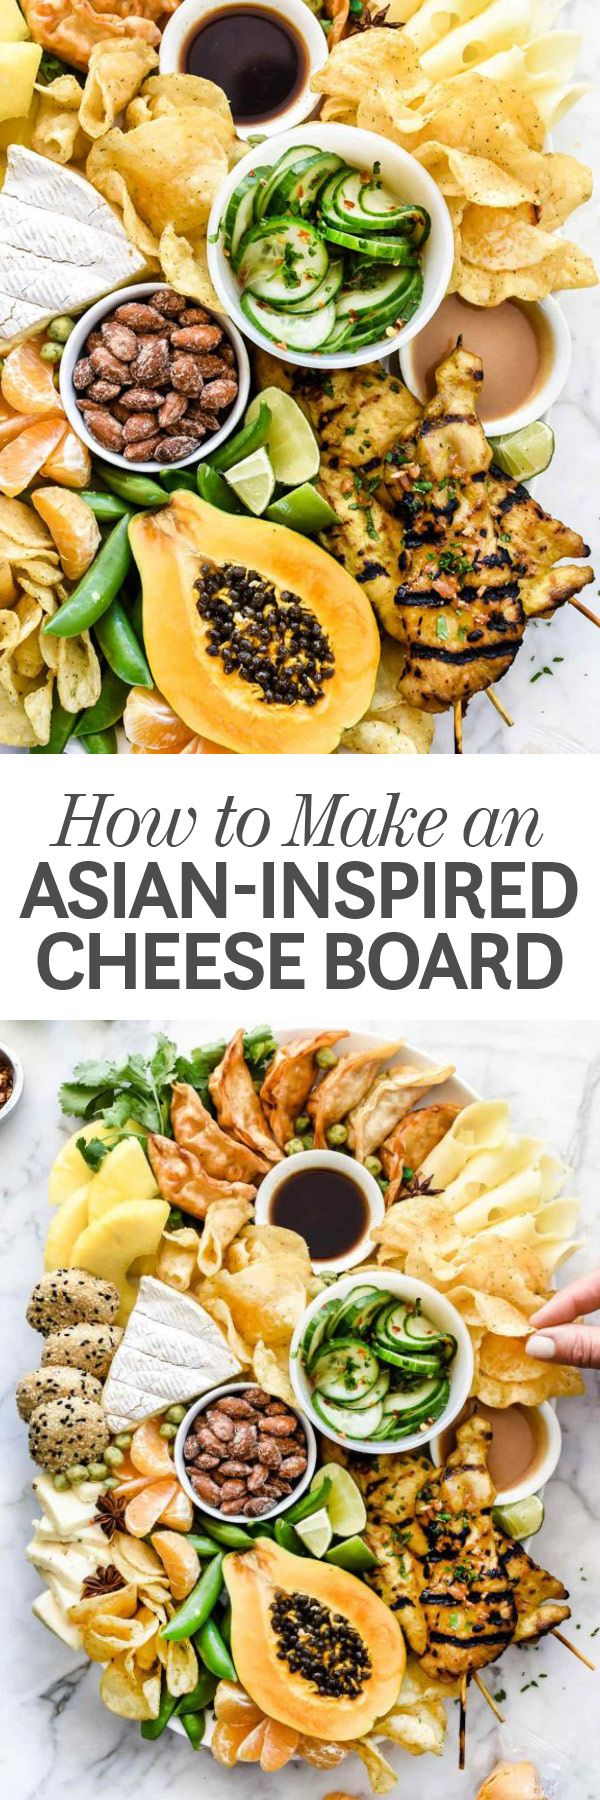 Whether you call it a cheese board or a cheese plate, all that matters for this twist on the loaded appetizer platter is that it's piled high with a variety of Asian-inspired bites. | foodiecrush.com #cheeseboard #cheese #potatochips #Asian #recipes